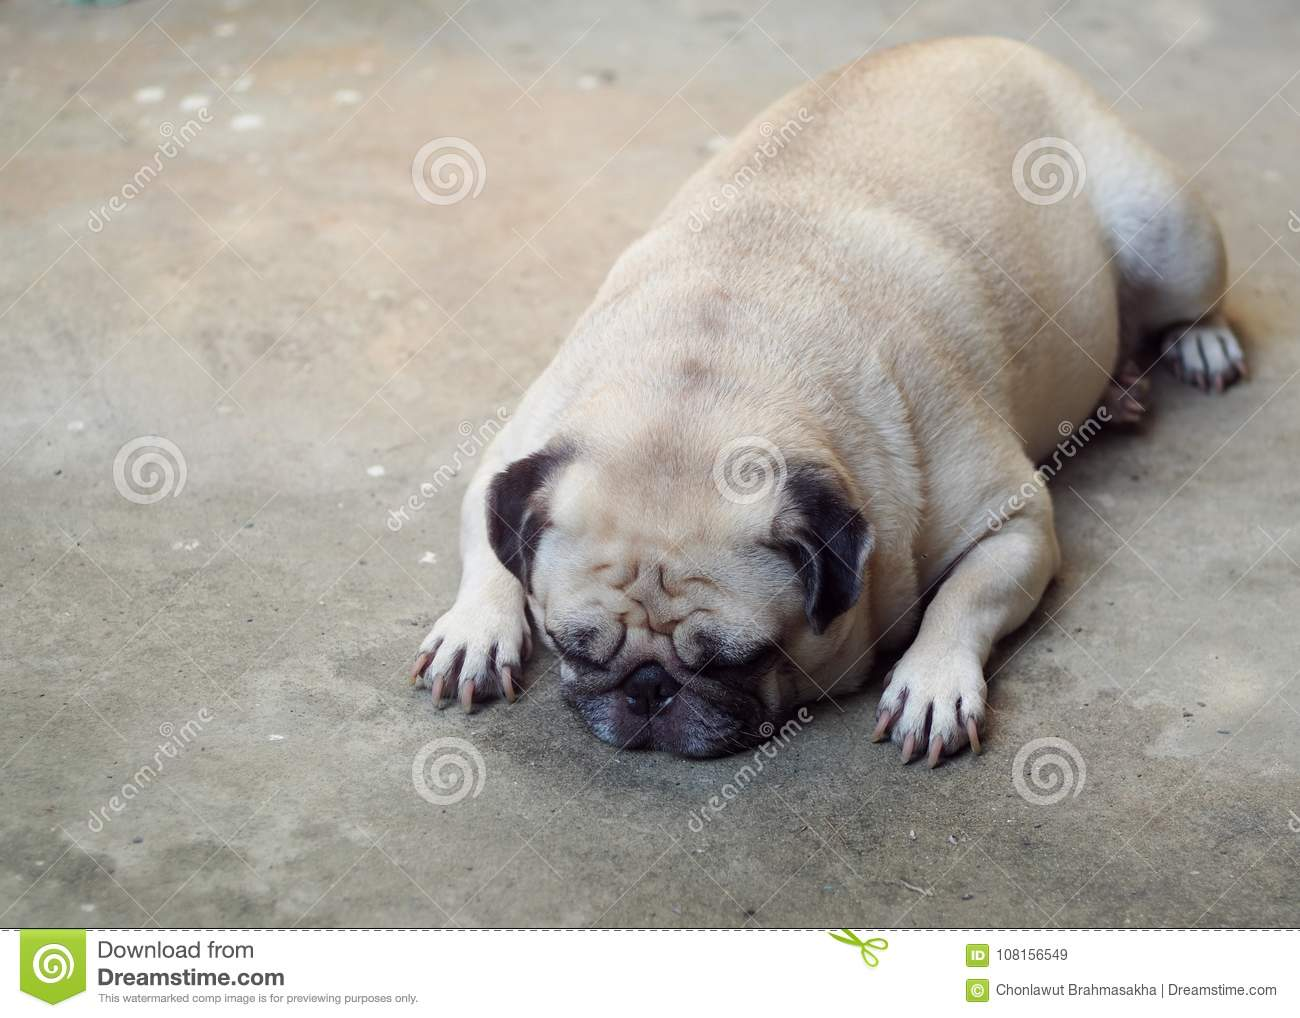 Portraits photo of a lovely white fat cute pug dog laying flat on concrete garage floor making sad and lonesome face under warm natural sunlight